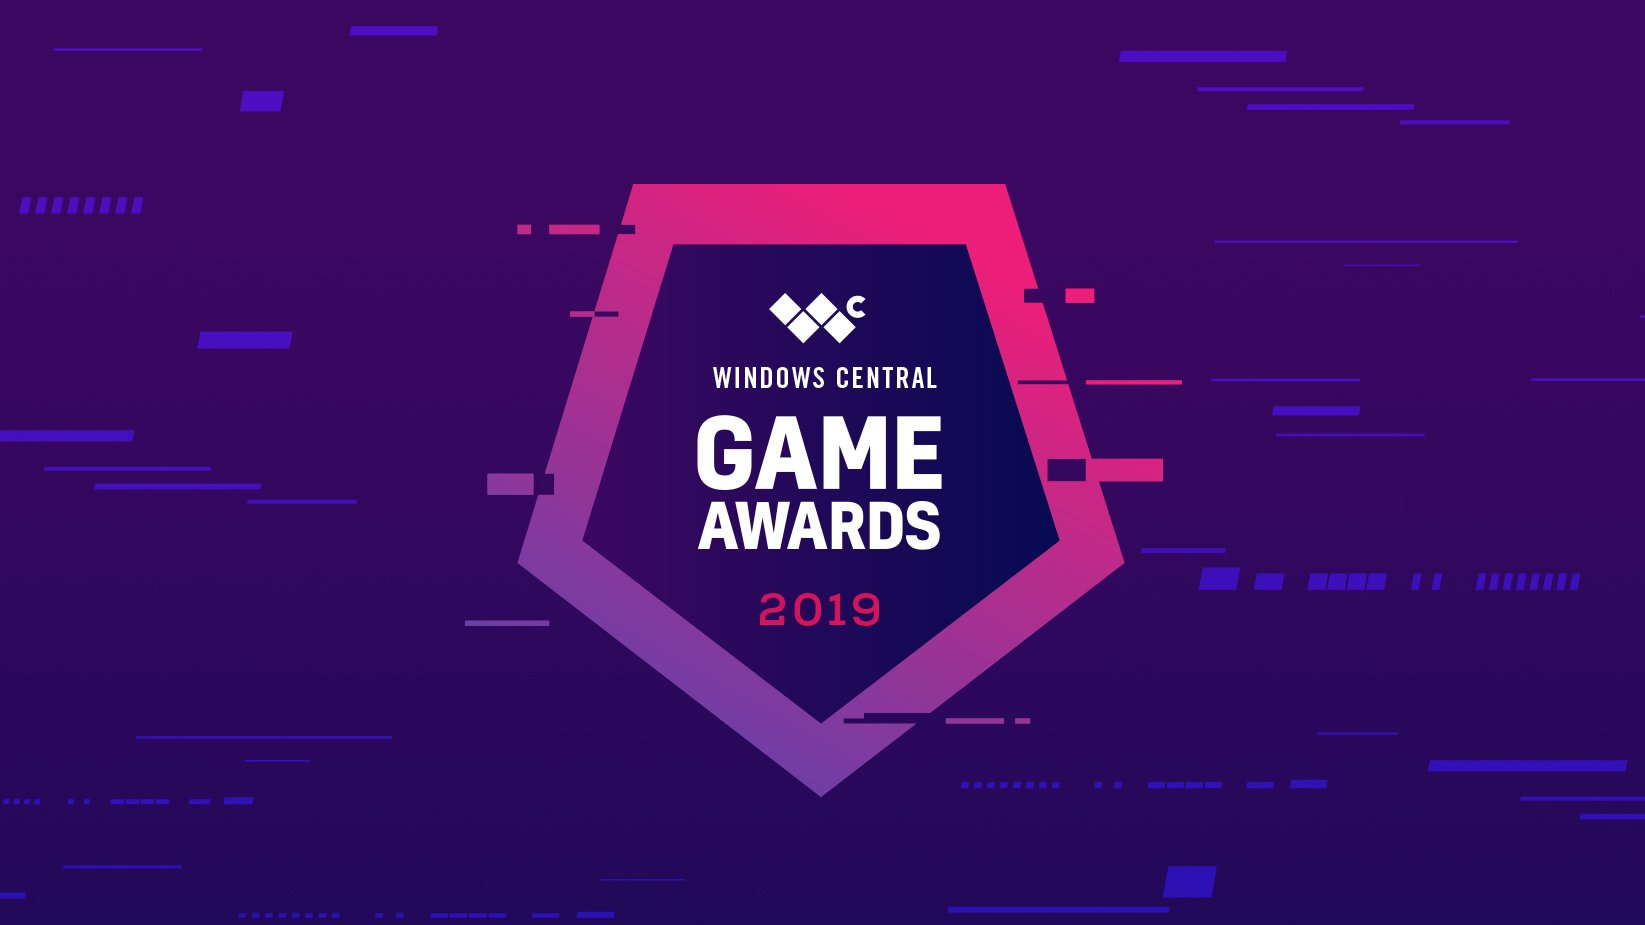 Windows Central Game Awards 2019 Awarding The Best Games